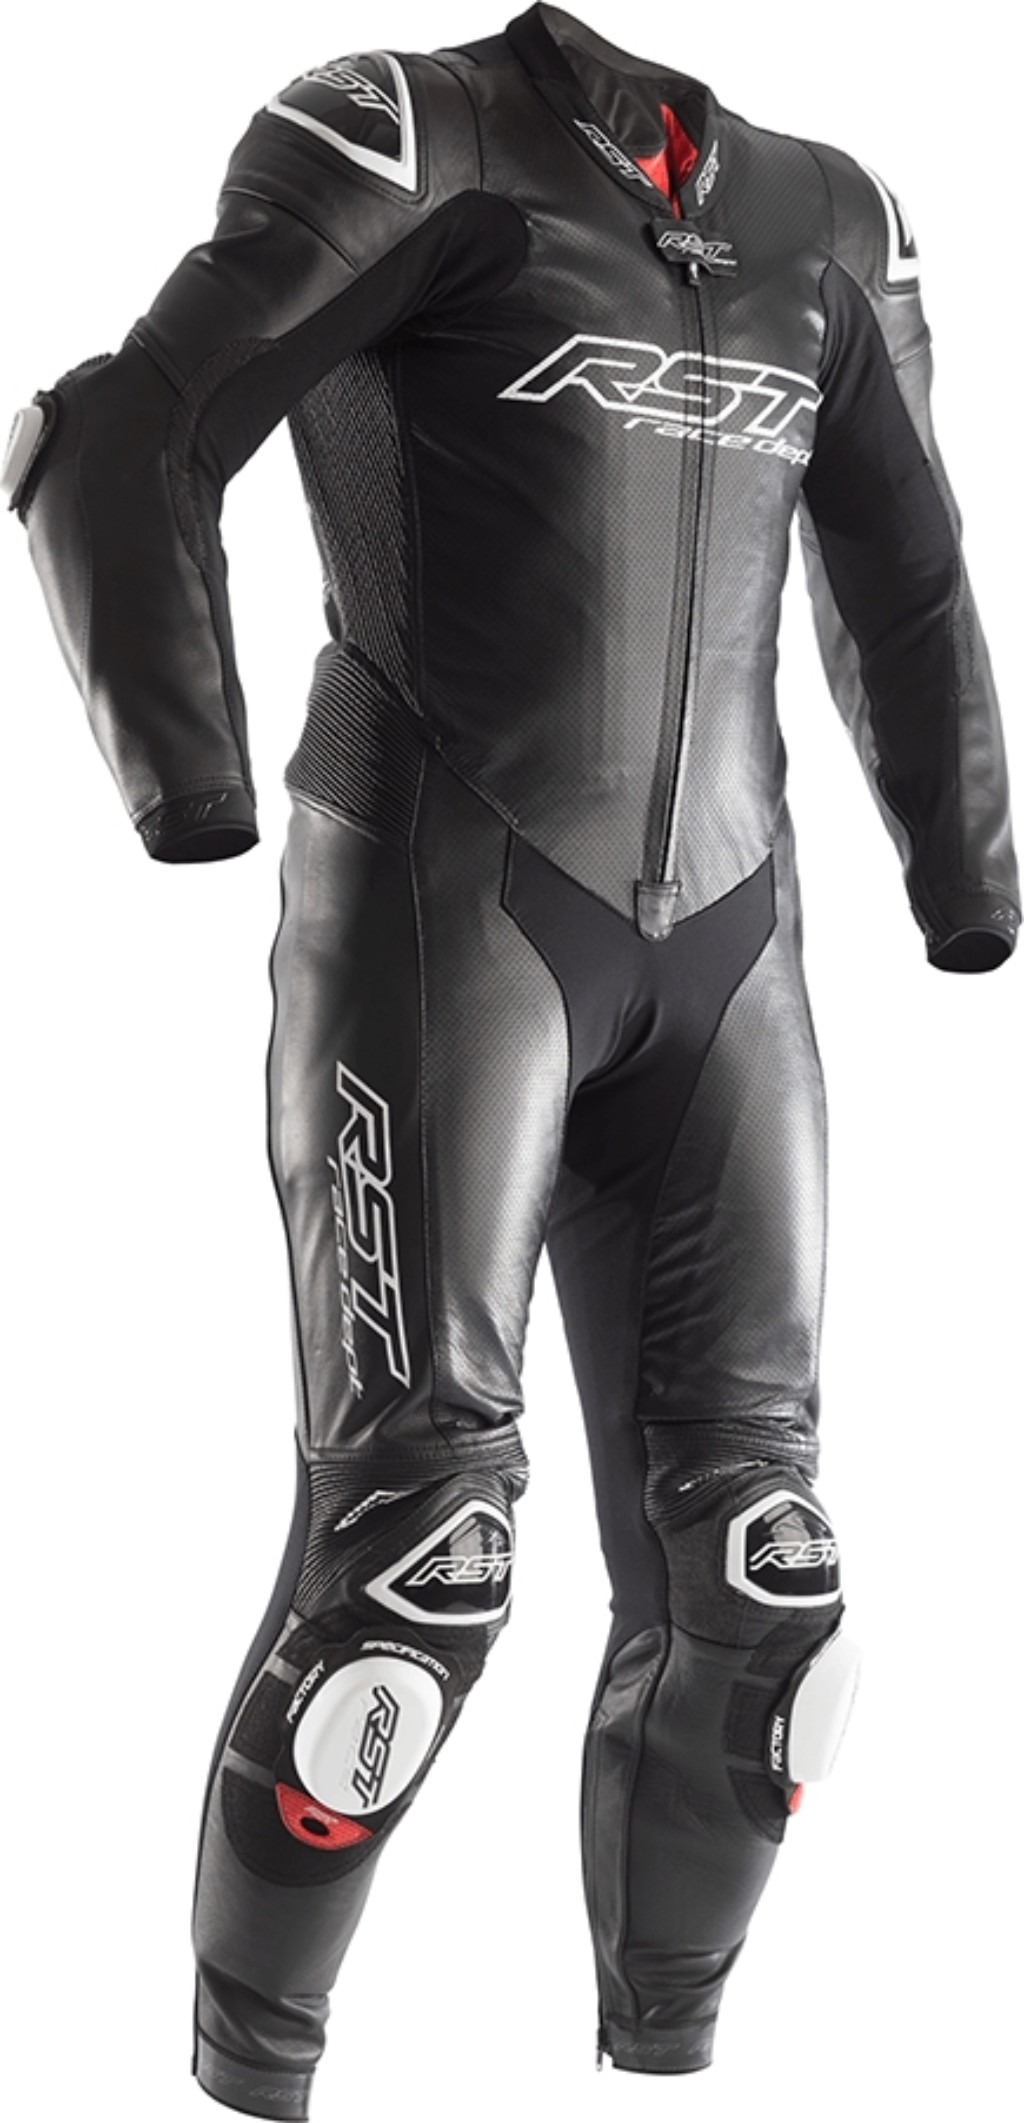 Race Dept V4 Kangaroo Leather One Piece Suit Racing Suit